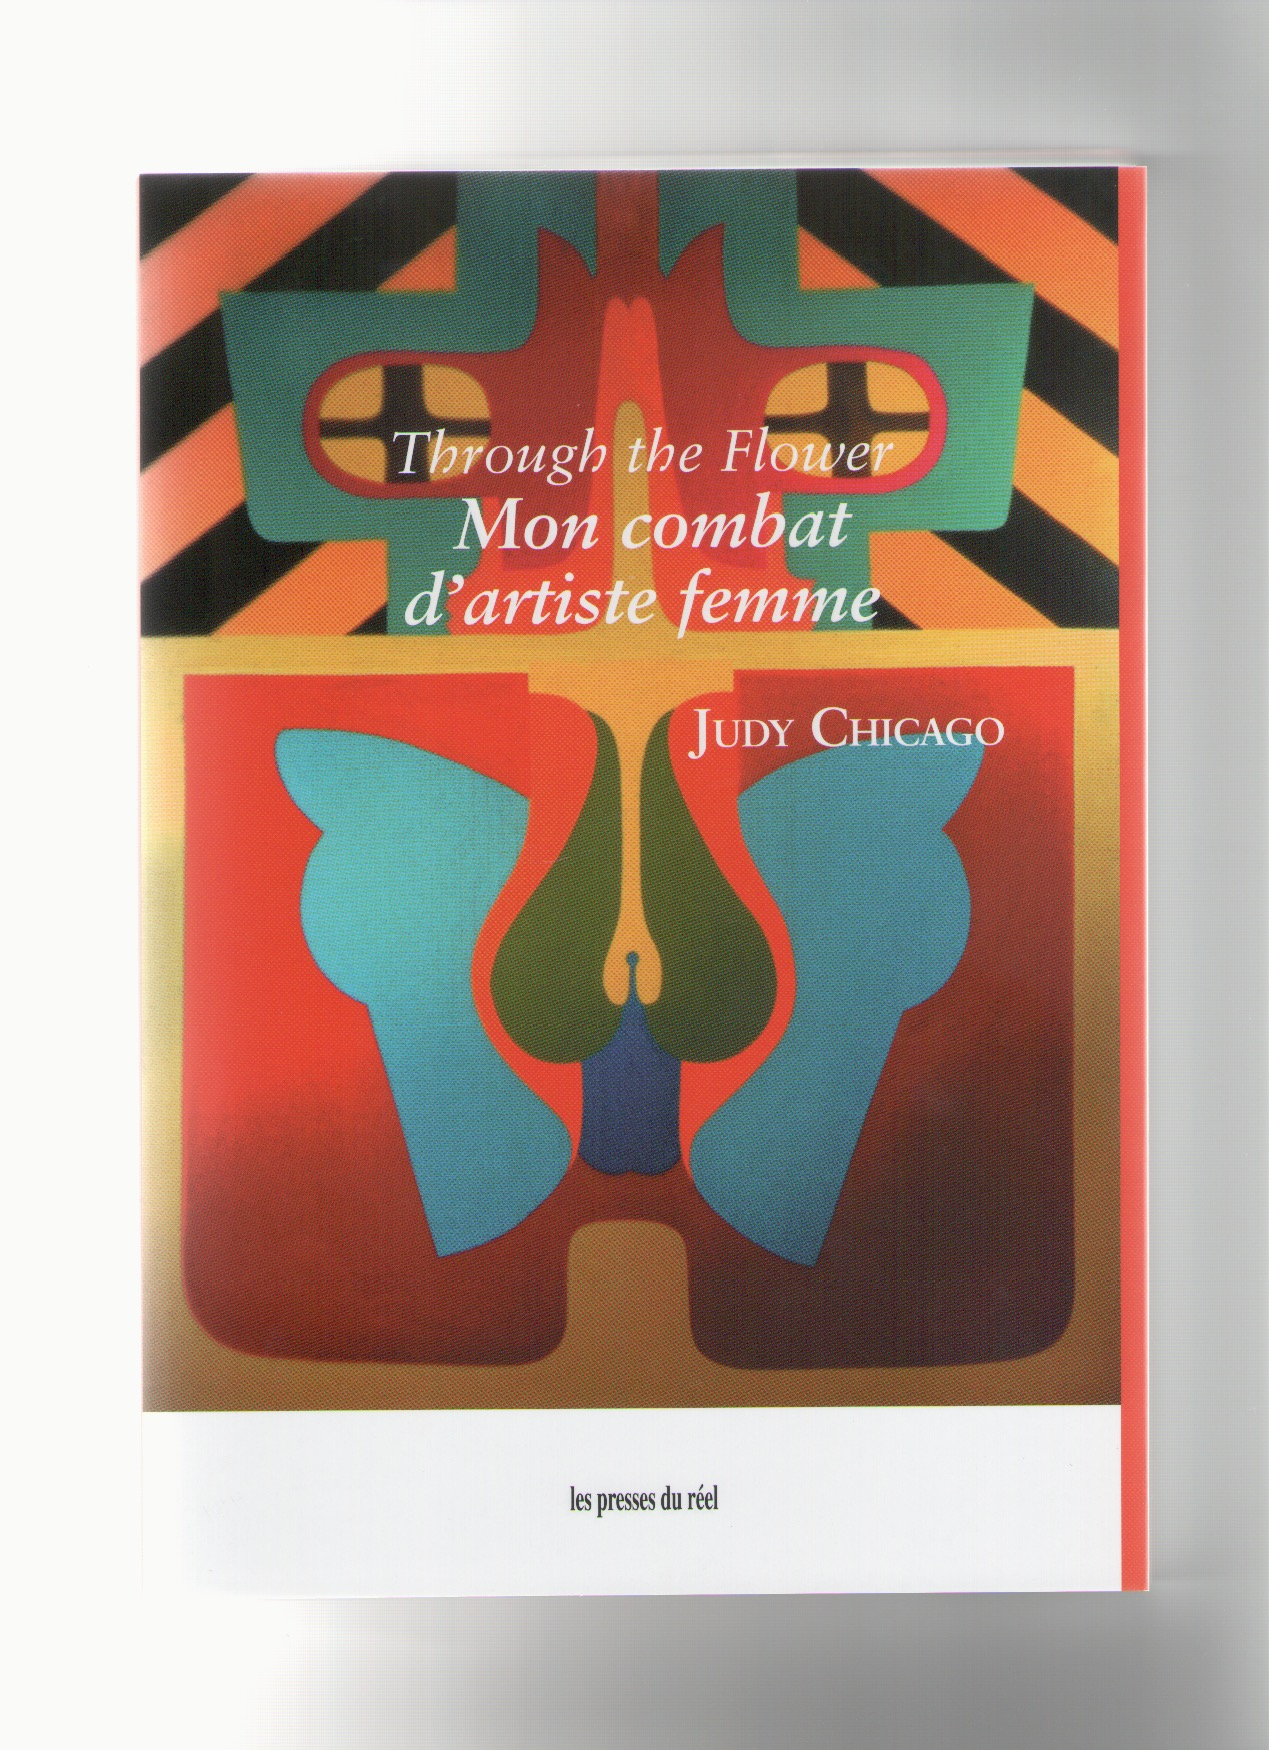 CHICAGO, Judy - Through the Flower. Mon combat d'artiste femme